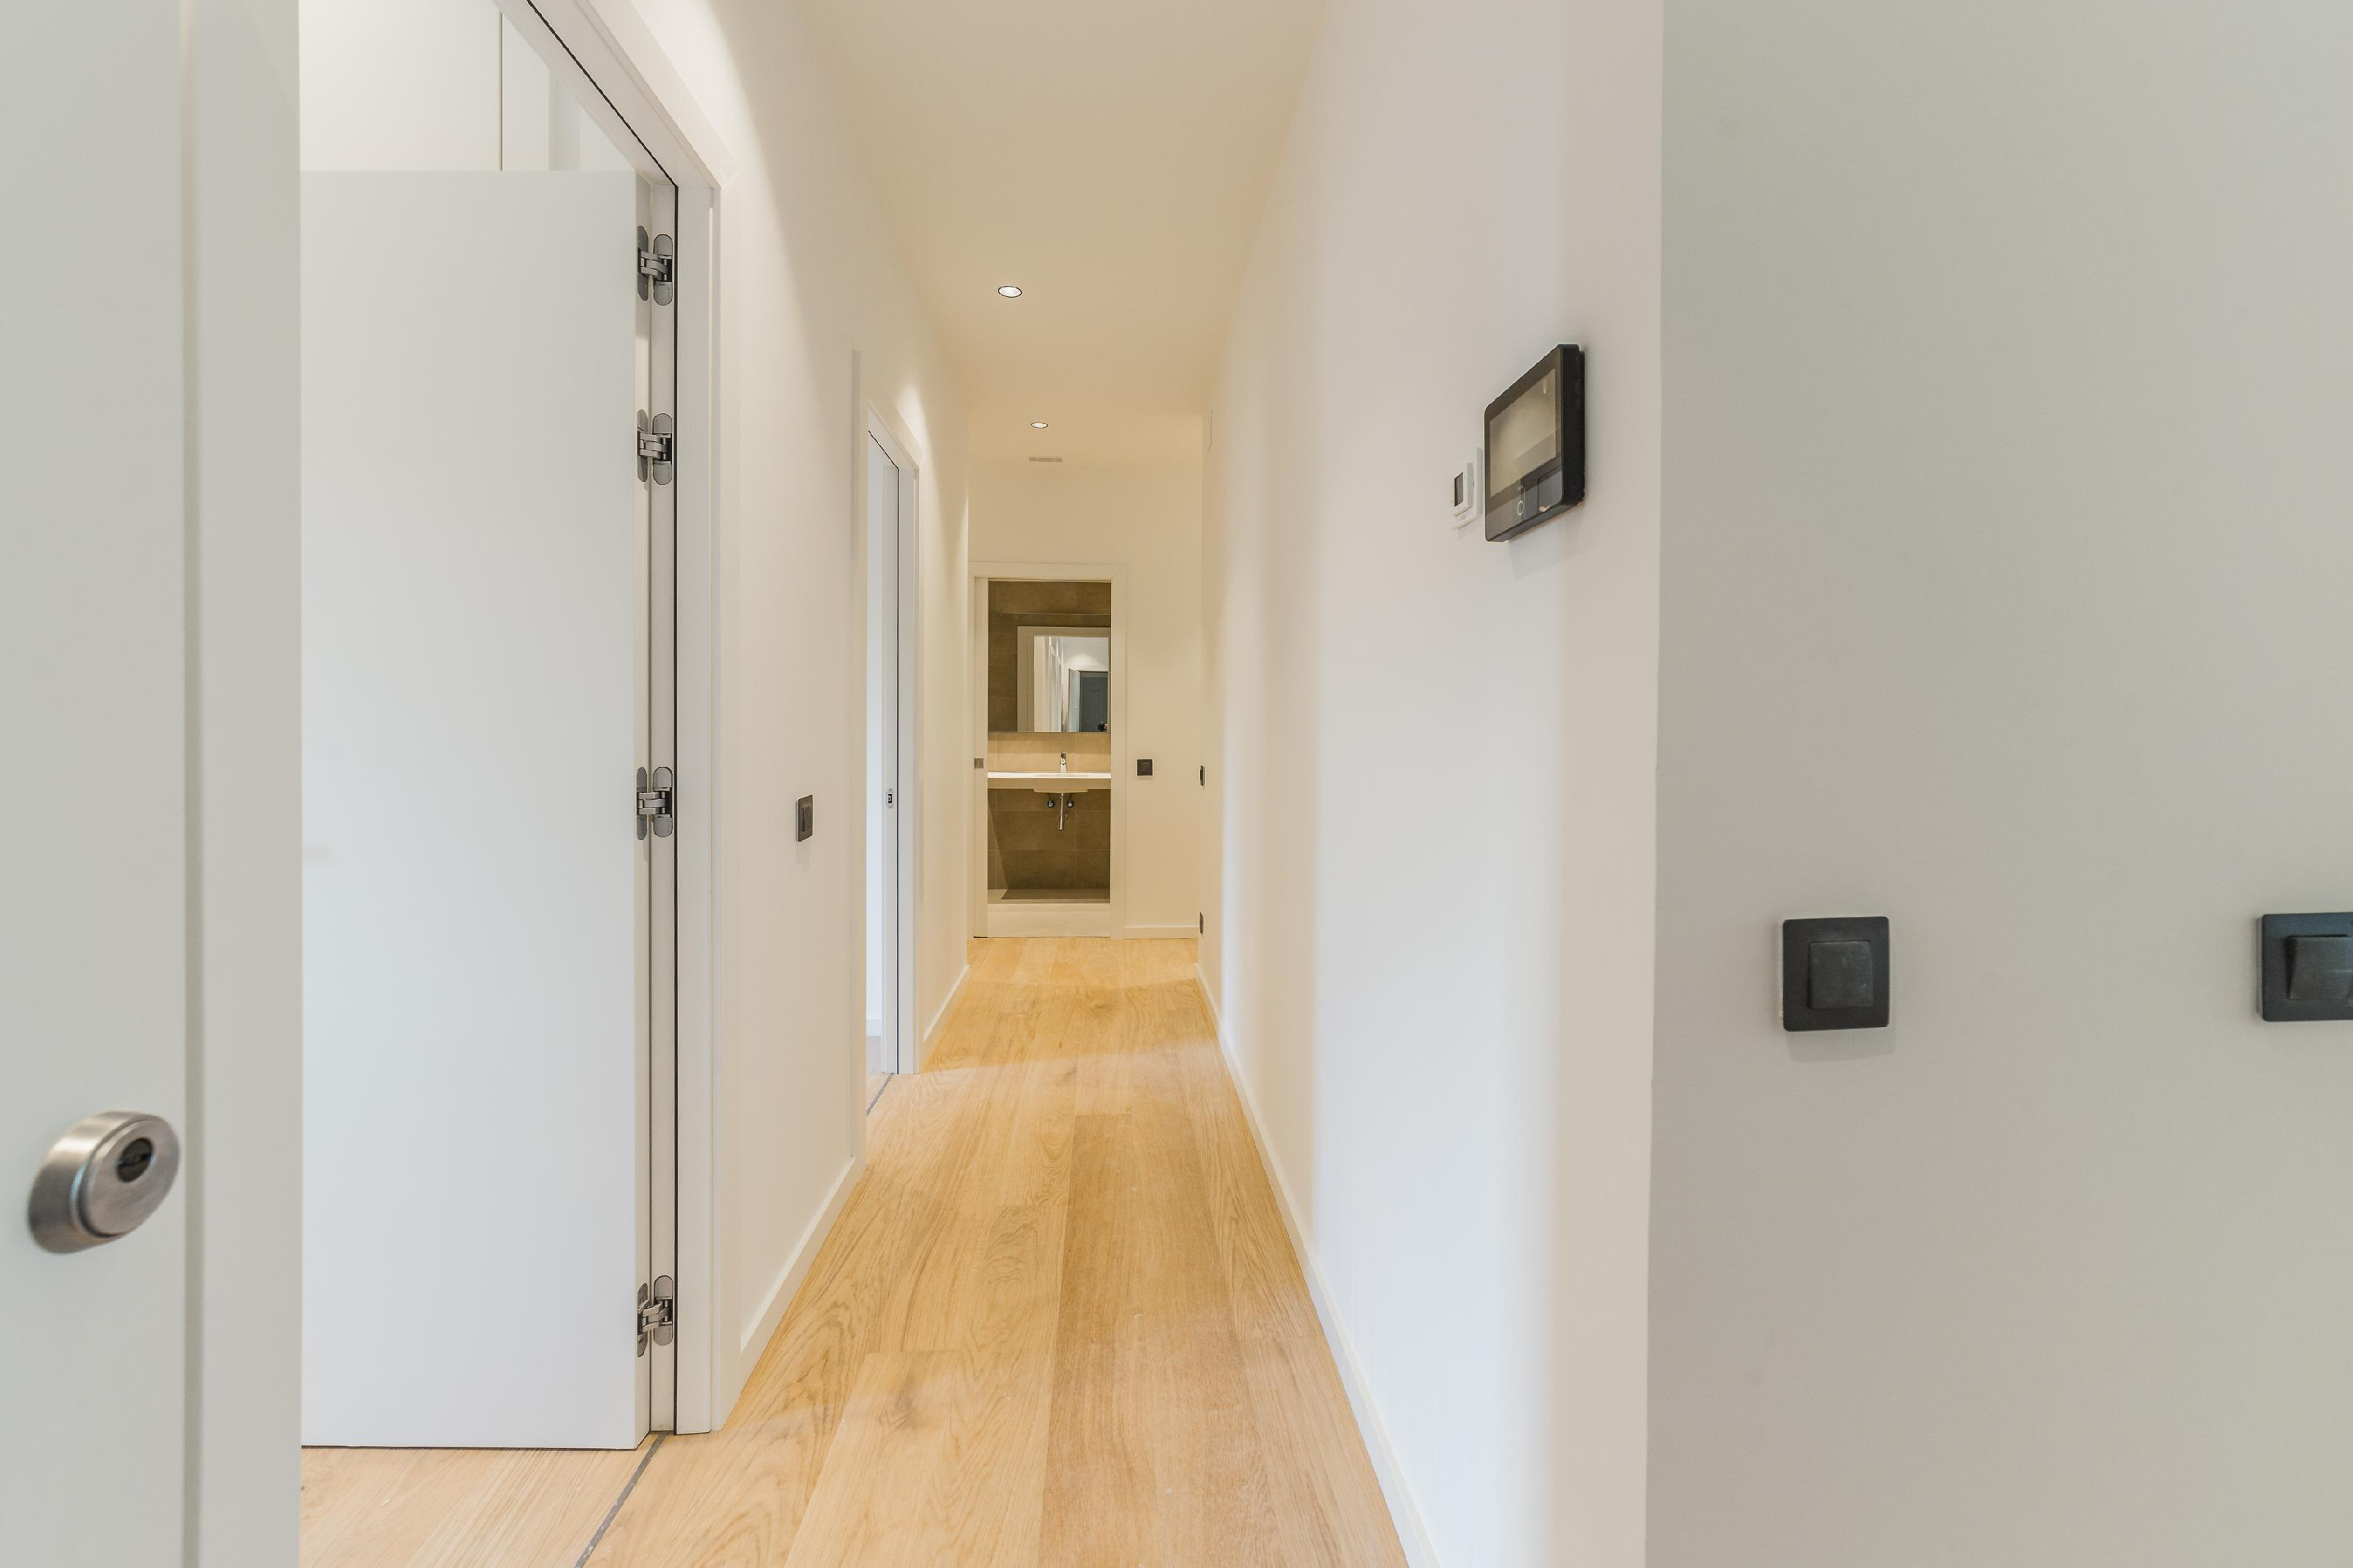 182474 Apartment for sale in Eixample, Old Left Eixample 6